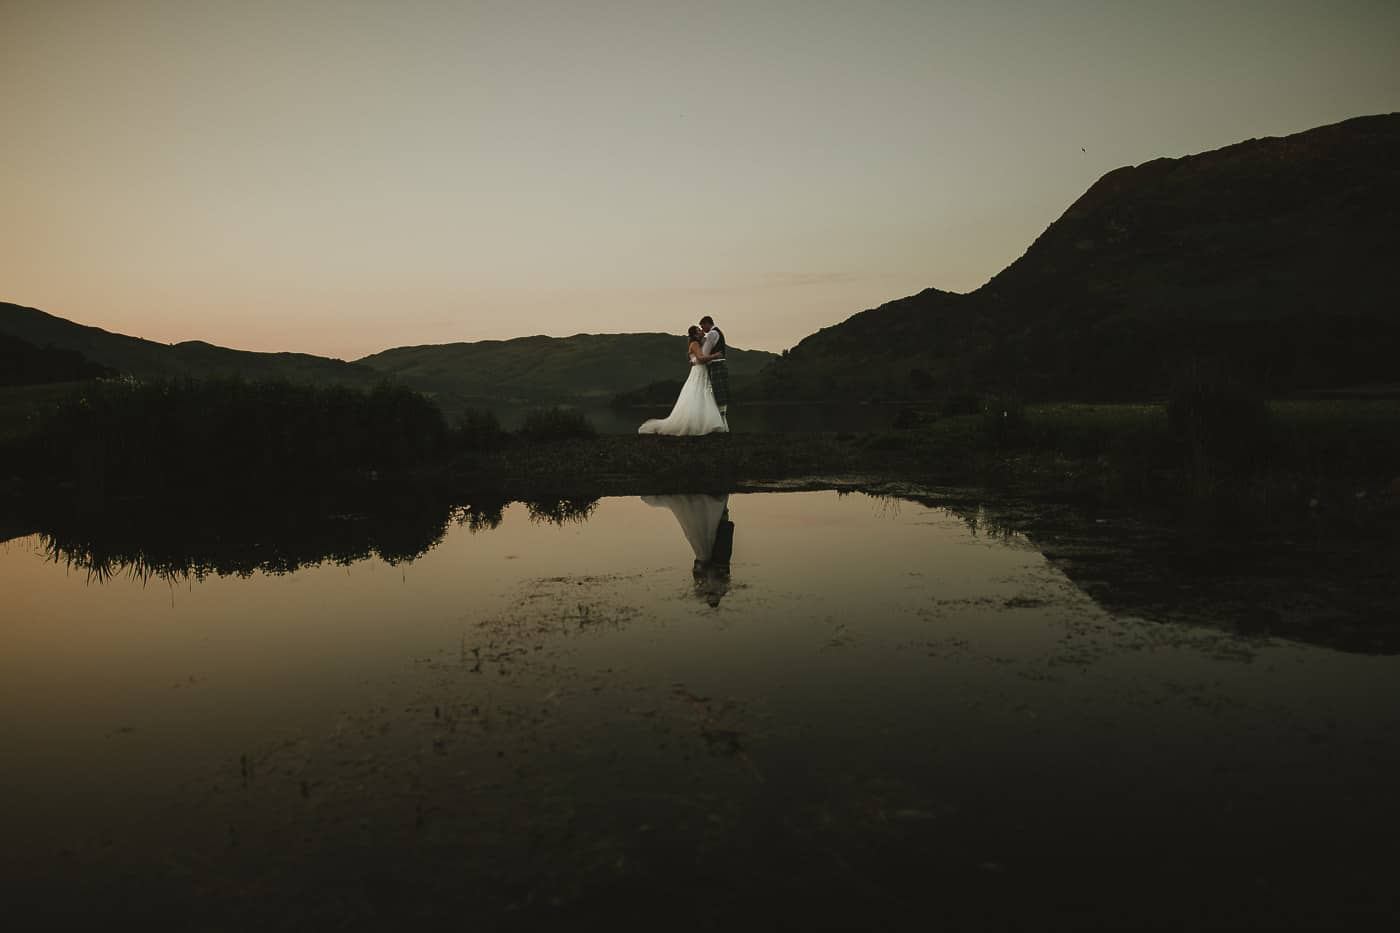 Inn on the lake couple photograph of bride and groom at Ullswater lake shore